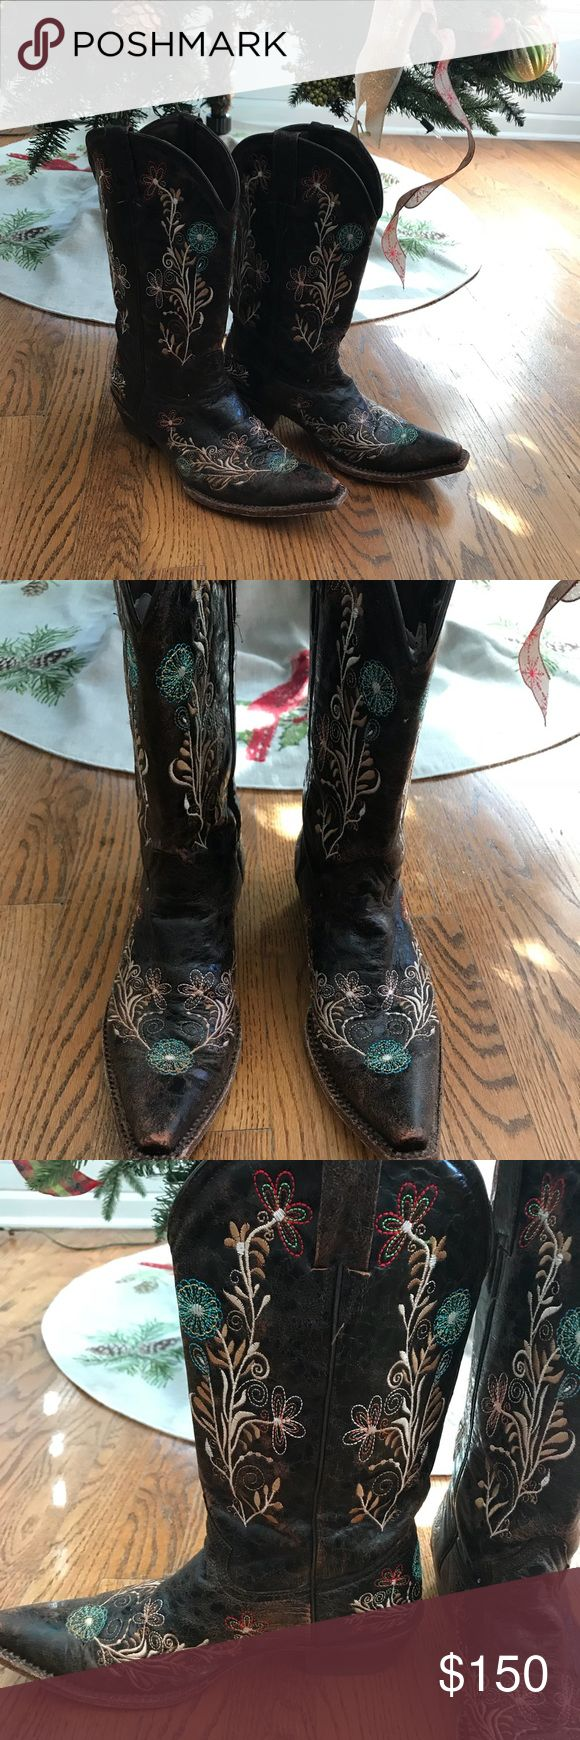 🌼Peco's Bill Genuine Leather Boots Peco's Bill Genuine Leather Hand Stitched Boots Size 8.5 EUC run true to size Peco's Bill Shoes Heeled Boots